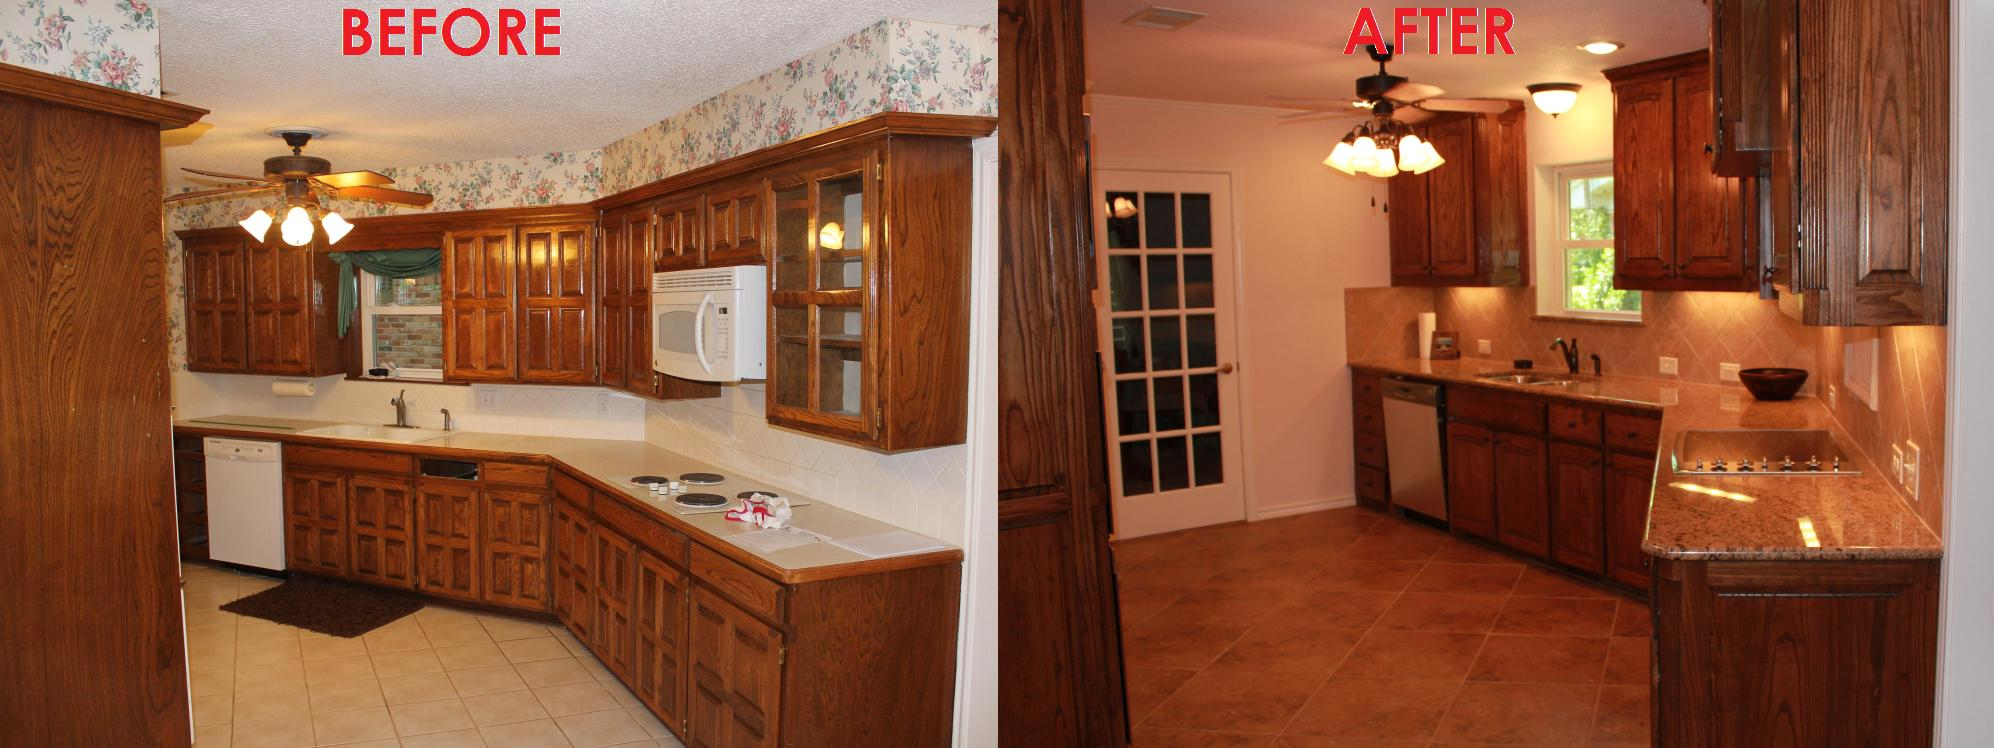 Luxury Small Kitchen Remodel Before And After With New Cabinet Outlook And  Sink Plus Backsplash Together